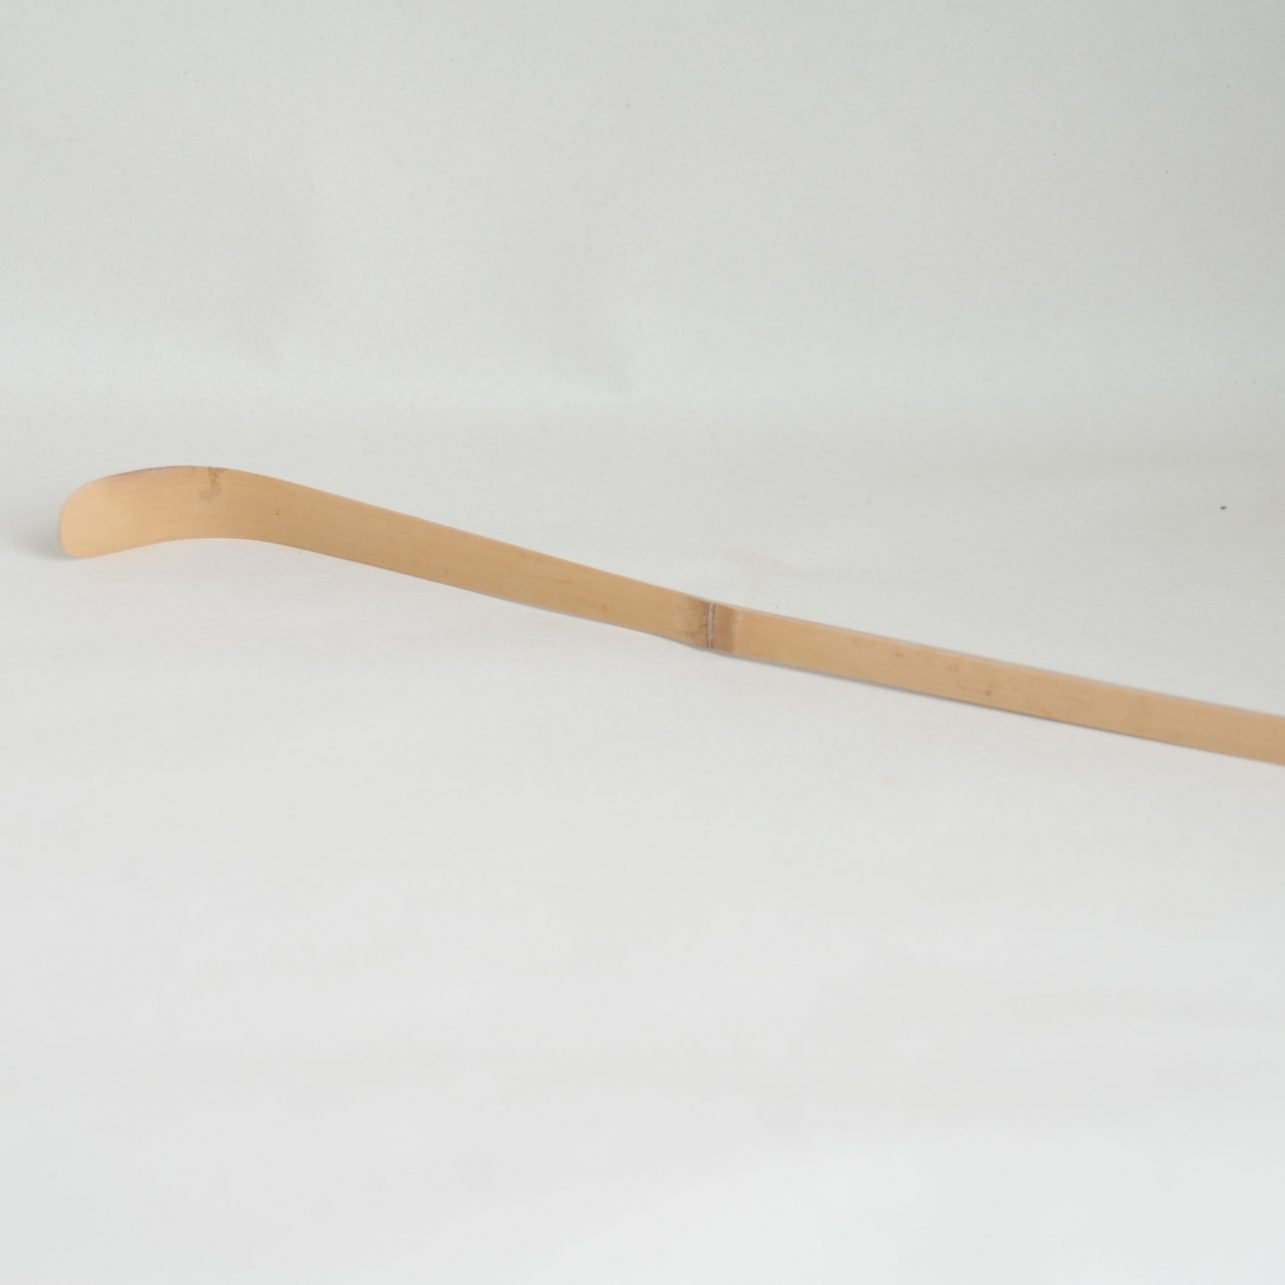 Bamboo Tea Scoop made in Japan